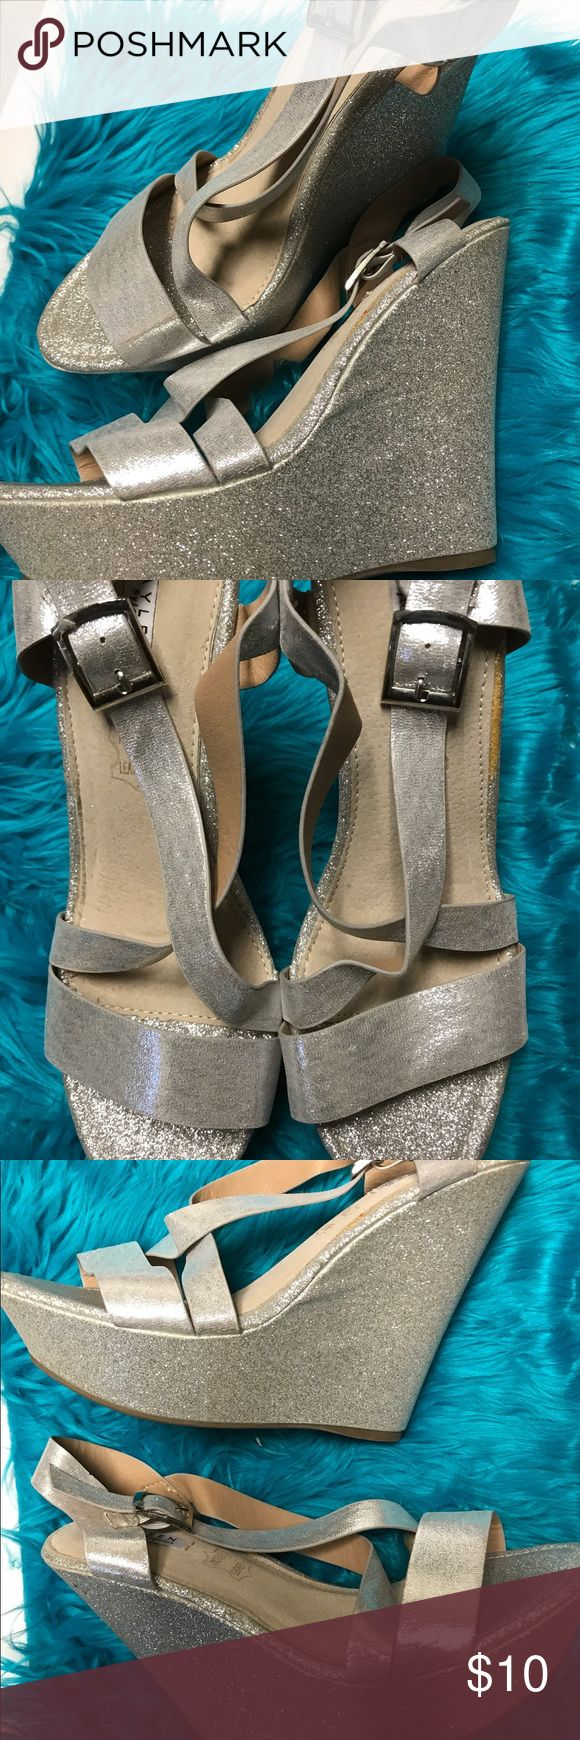 Metallic Silver Wedge sandals Sz 10 Gently Used!! Sz 10. A little extra sparkle goes a long way with these crystal embellished high heel wedge sandals! Wedge sandals are decorated with fine Metallic crystals. Shoes Wedges